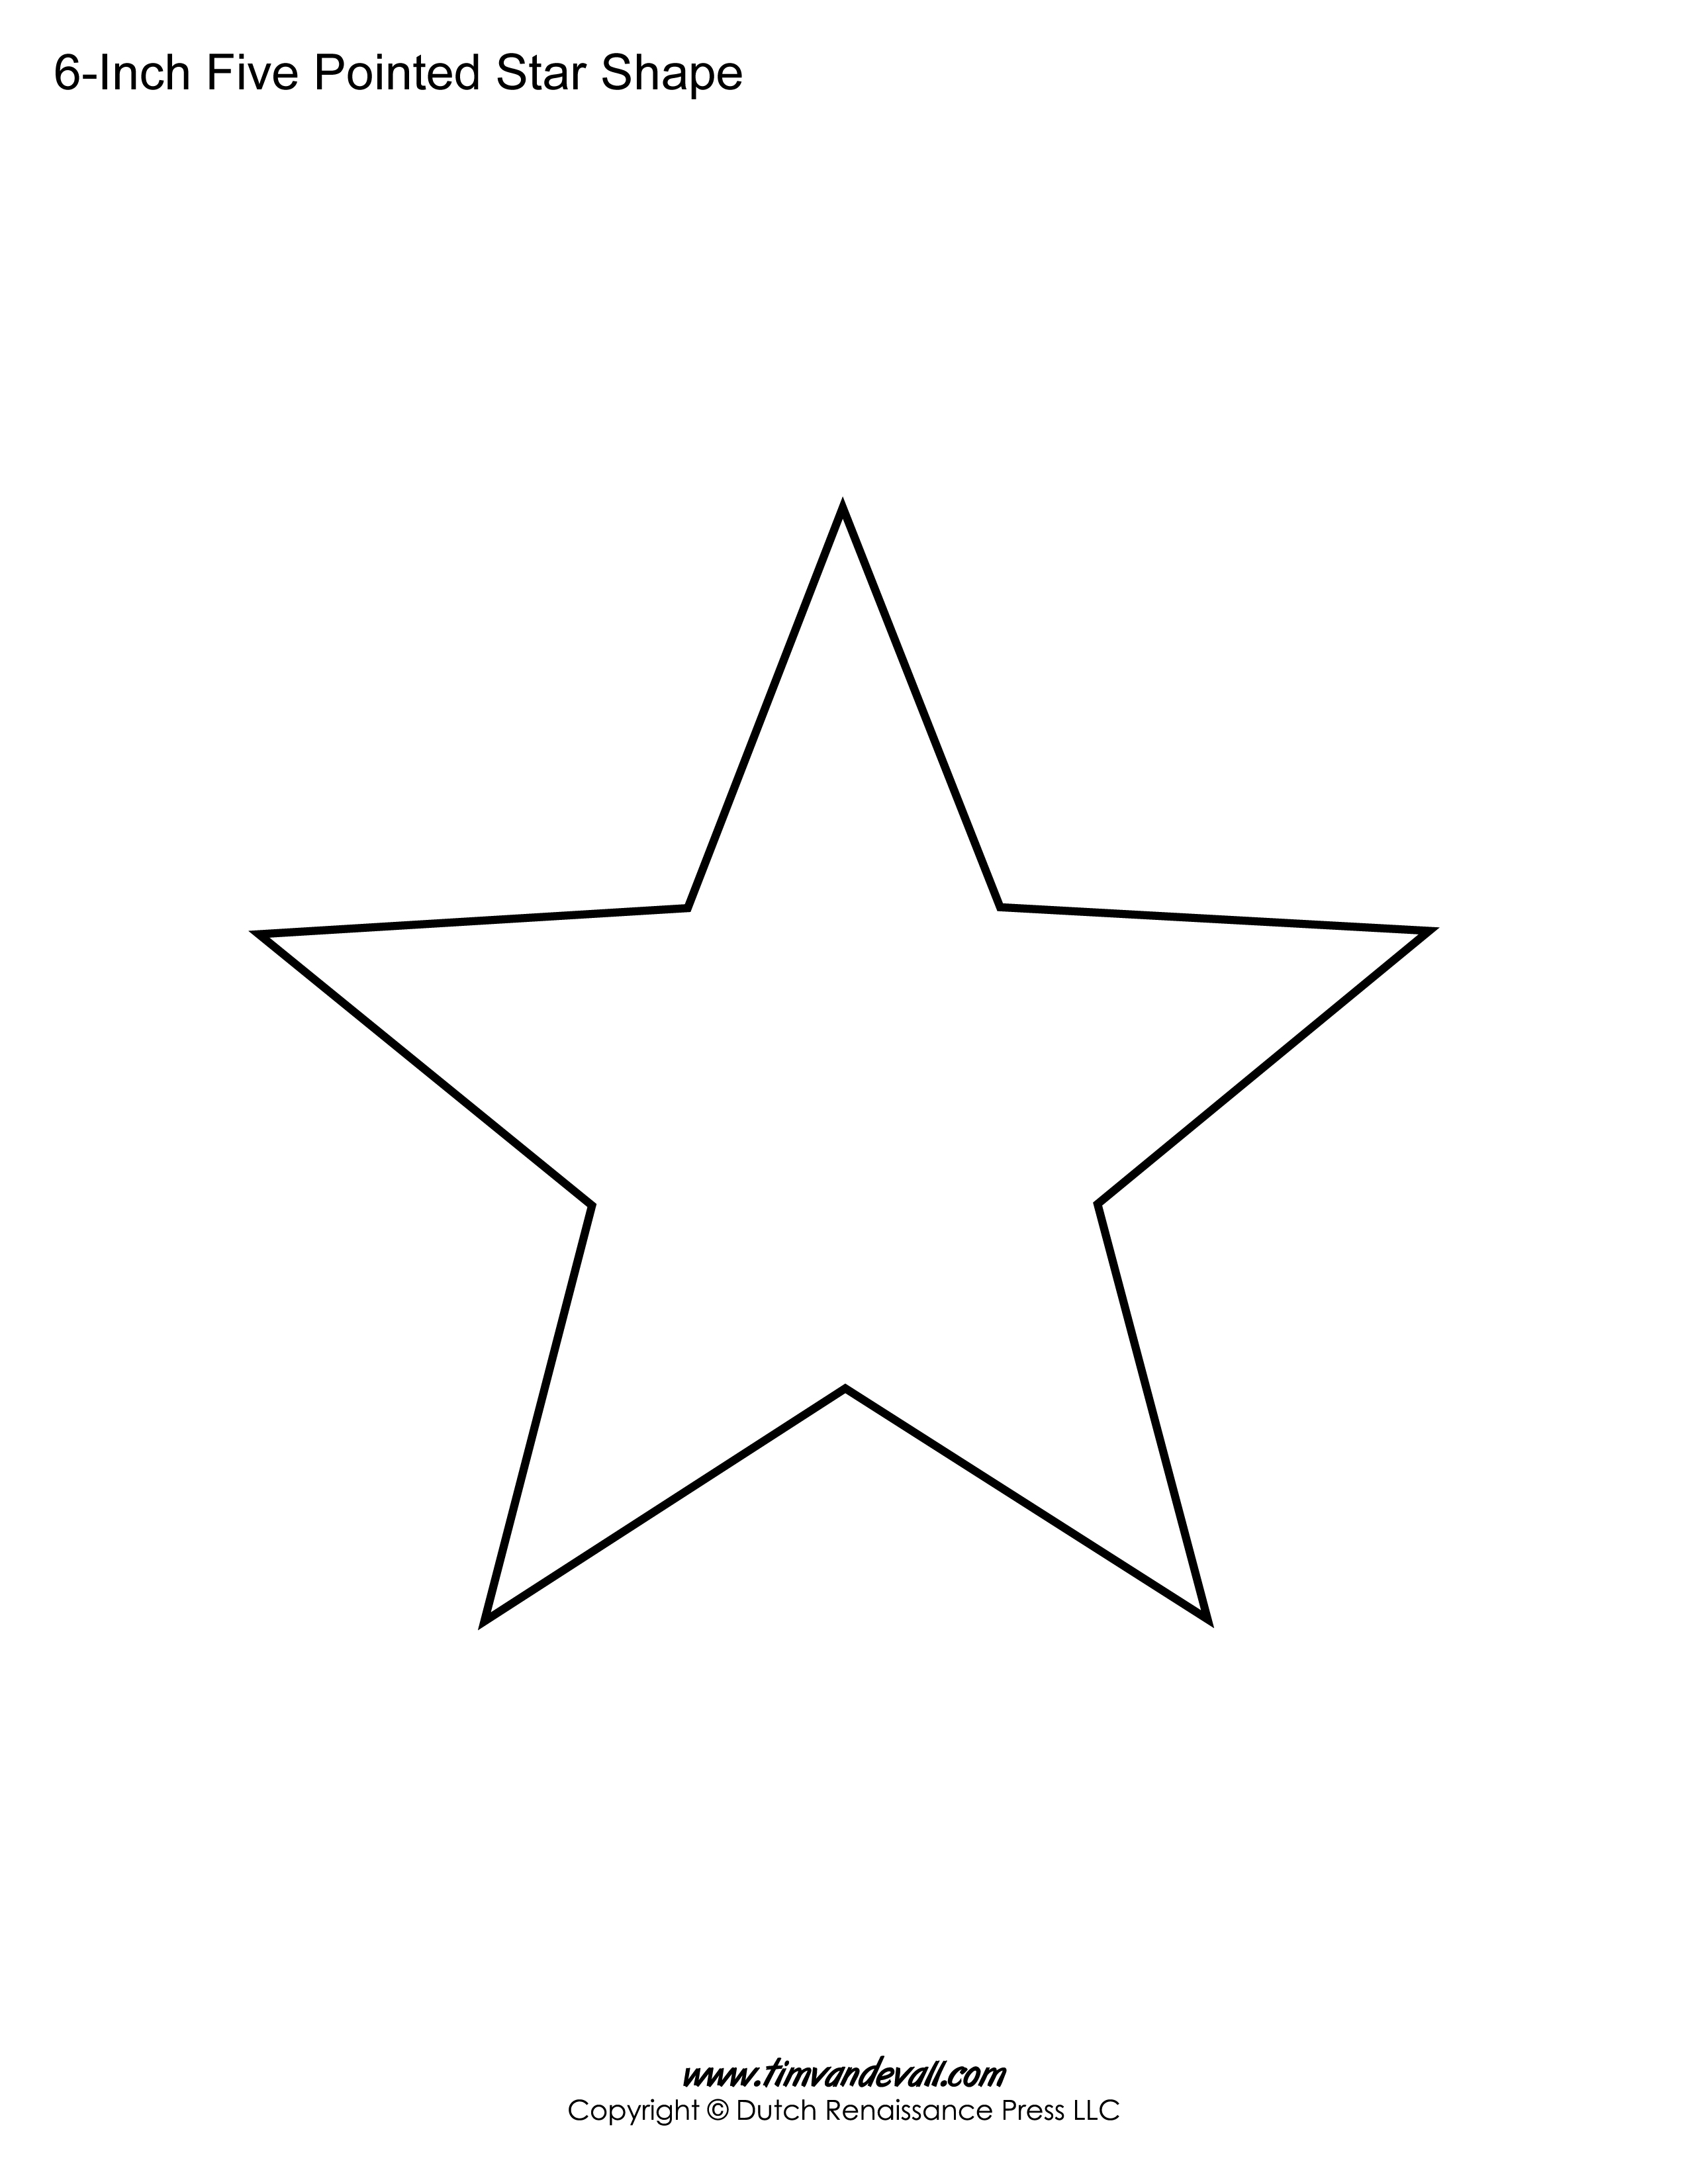 Captain America 4 Inch Star Template